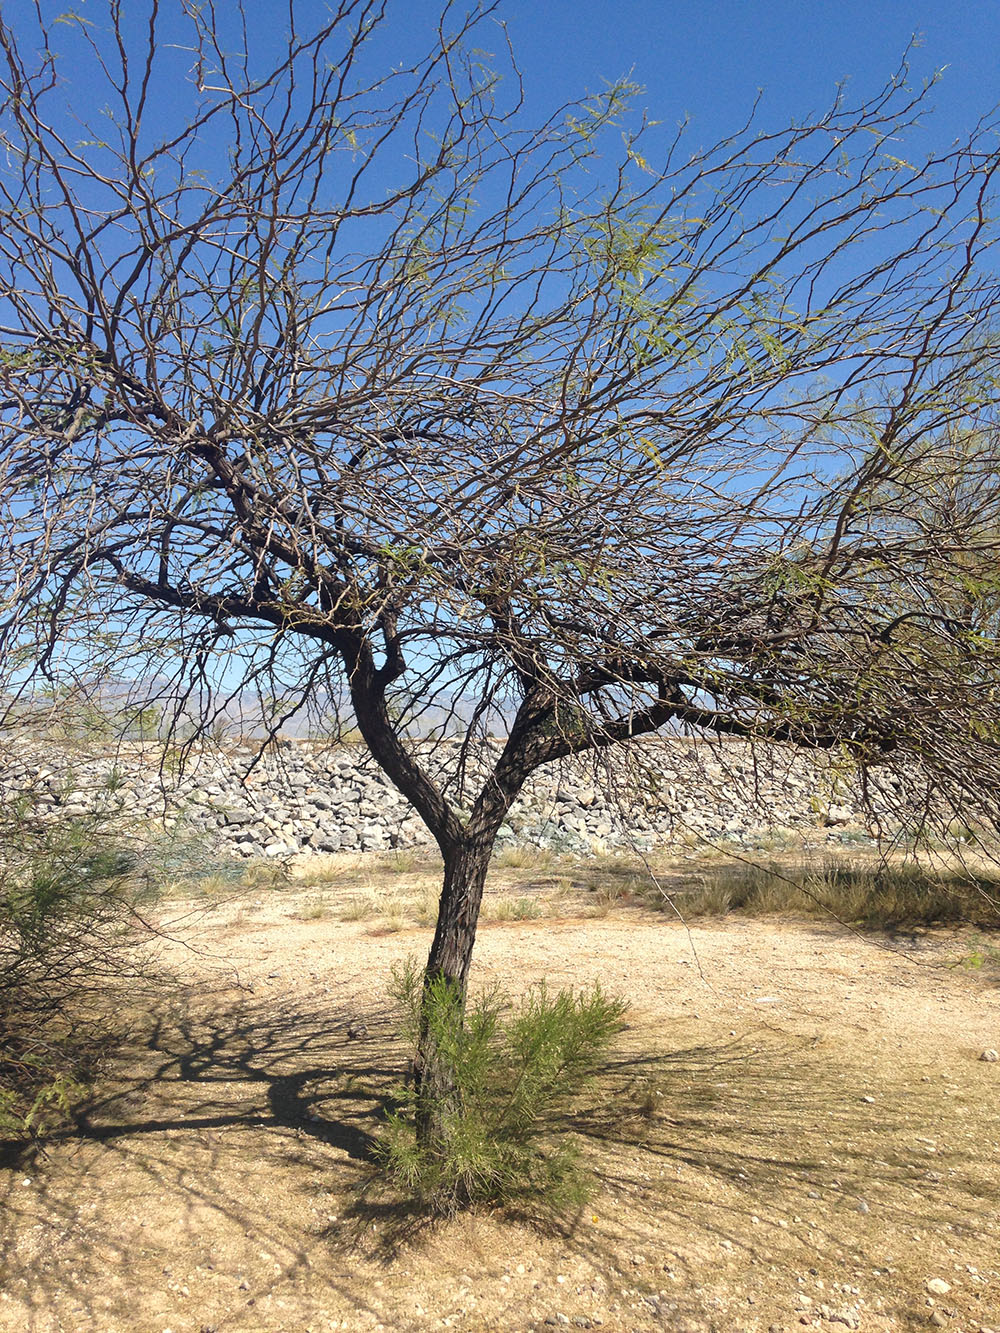 I am almost certain this is a Mesquite tree